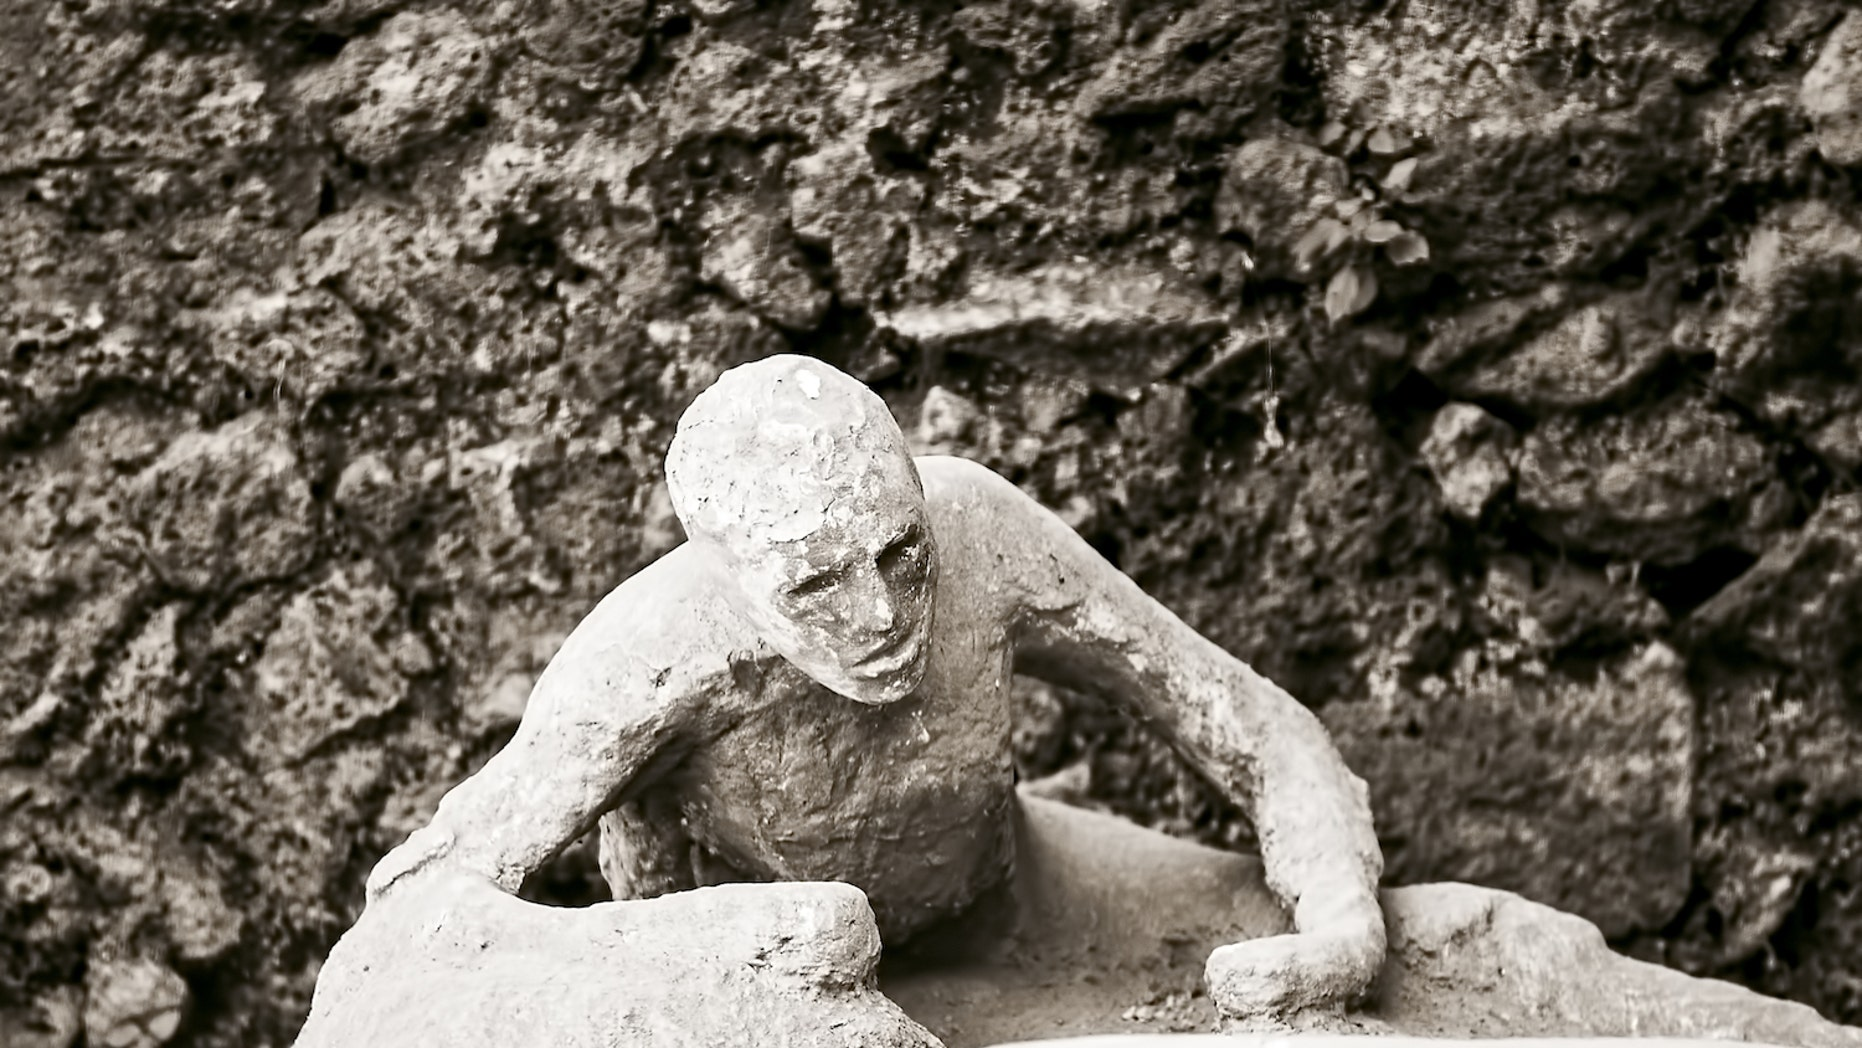 A victim who perished in Pompeii after Mount Vesuvius erupted in A.D. 79.